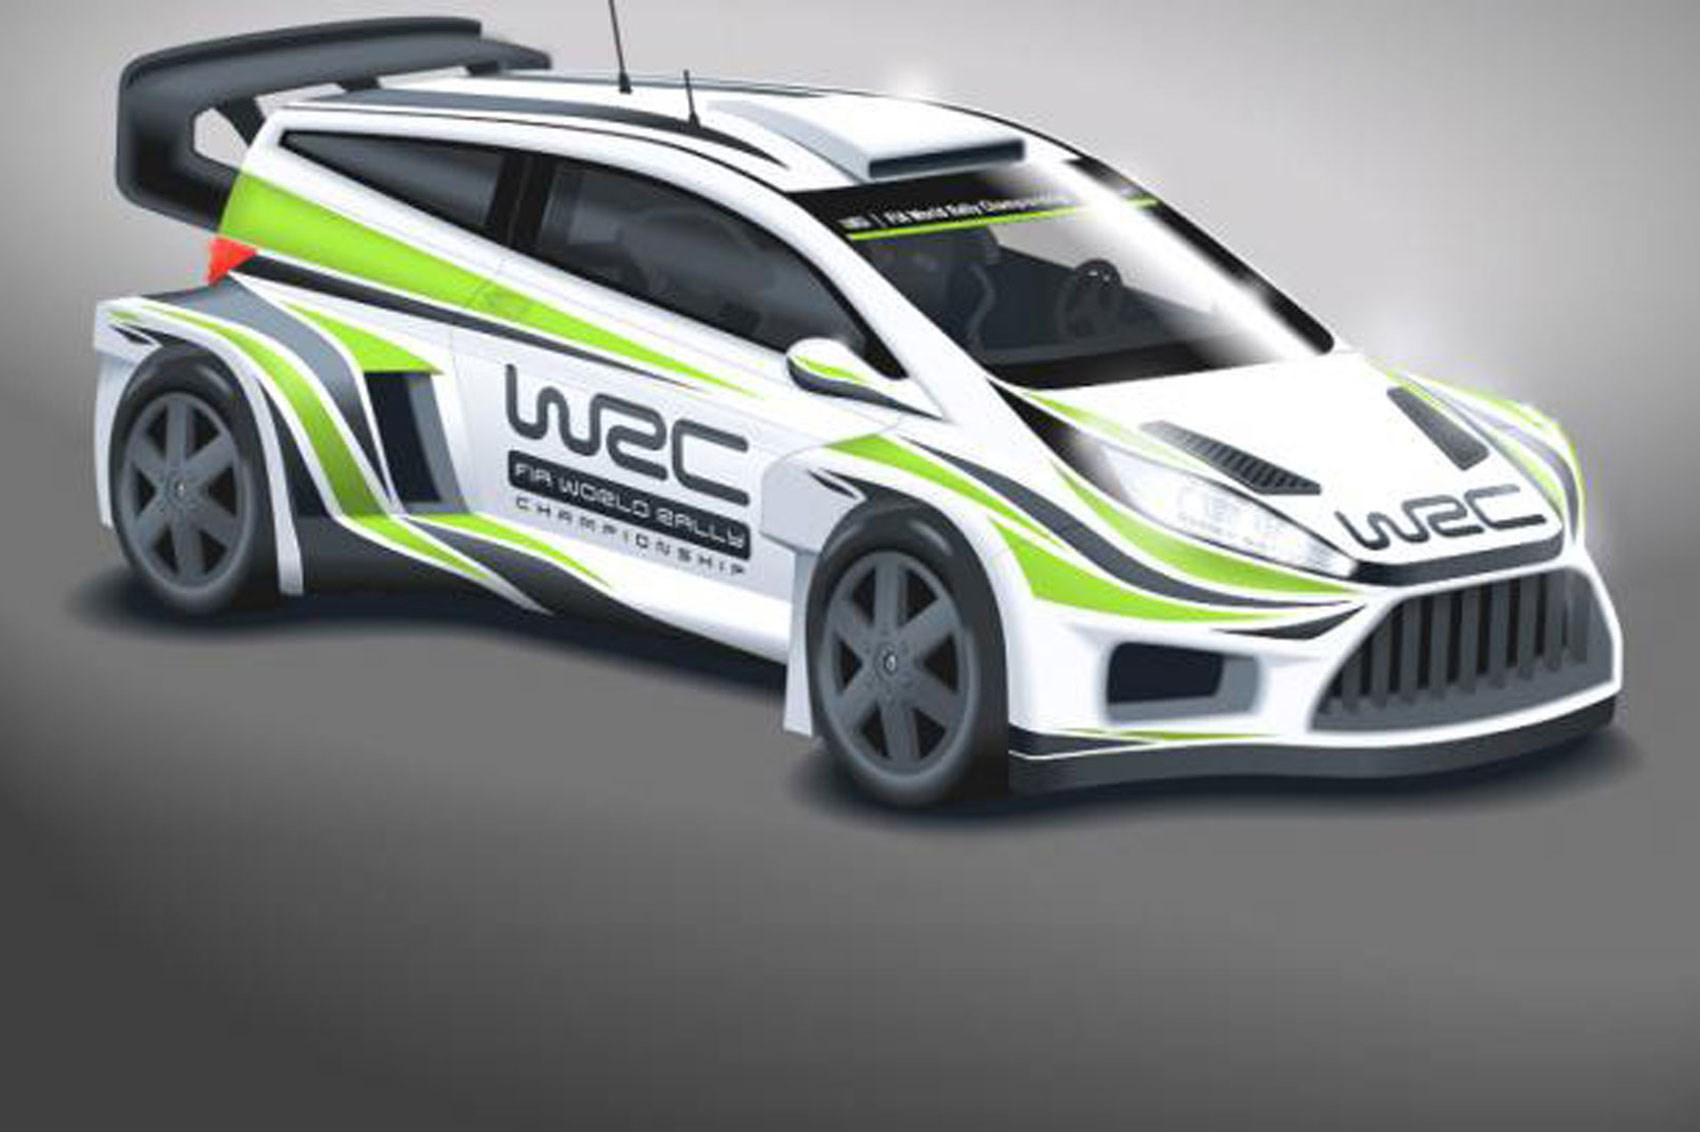 Ultrablogus  Pleasing Wild New Look For Wrc Cars In  By Car Magazine With Fascinating Wrc Cars Will Get Wider Bodies Bigger Wings And More Power For  With Amusing  Chevy Colorado Interior Also  Hyundai Elantra Interior In Addition Honda Civic  Interior And Hyundai Elantra  Interior As Well As Interior Pictures Of Mazda Cx  Additionally  Nissan Maxima Interior From Carmagazinecouk With Ultrablogus  Fascinating Wild New Look For Wrc Cars In  By Car Magazine With Amusing Wrc Cars Will Get Wider Bodies Bigger Wings And More Power For  And Pleasing  Chevy Colorado Interior Also  Hyundai Elantra Interior In Addition Honda Civic  Interior From Carmagazinecouk